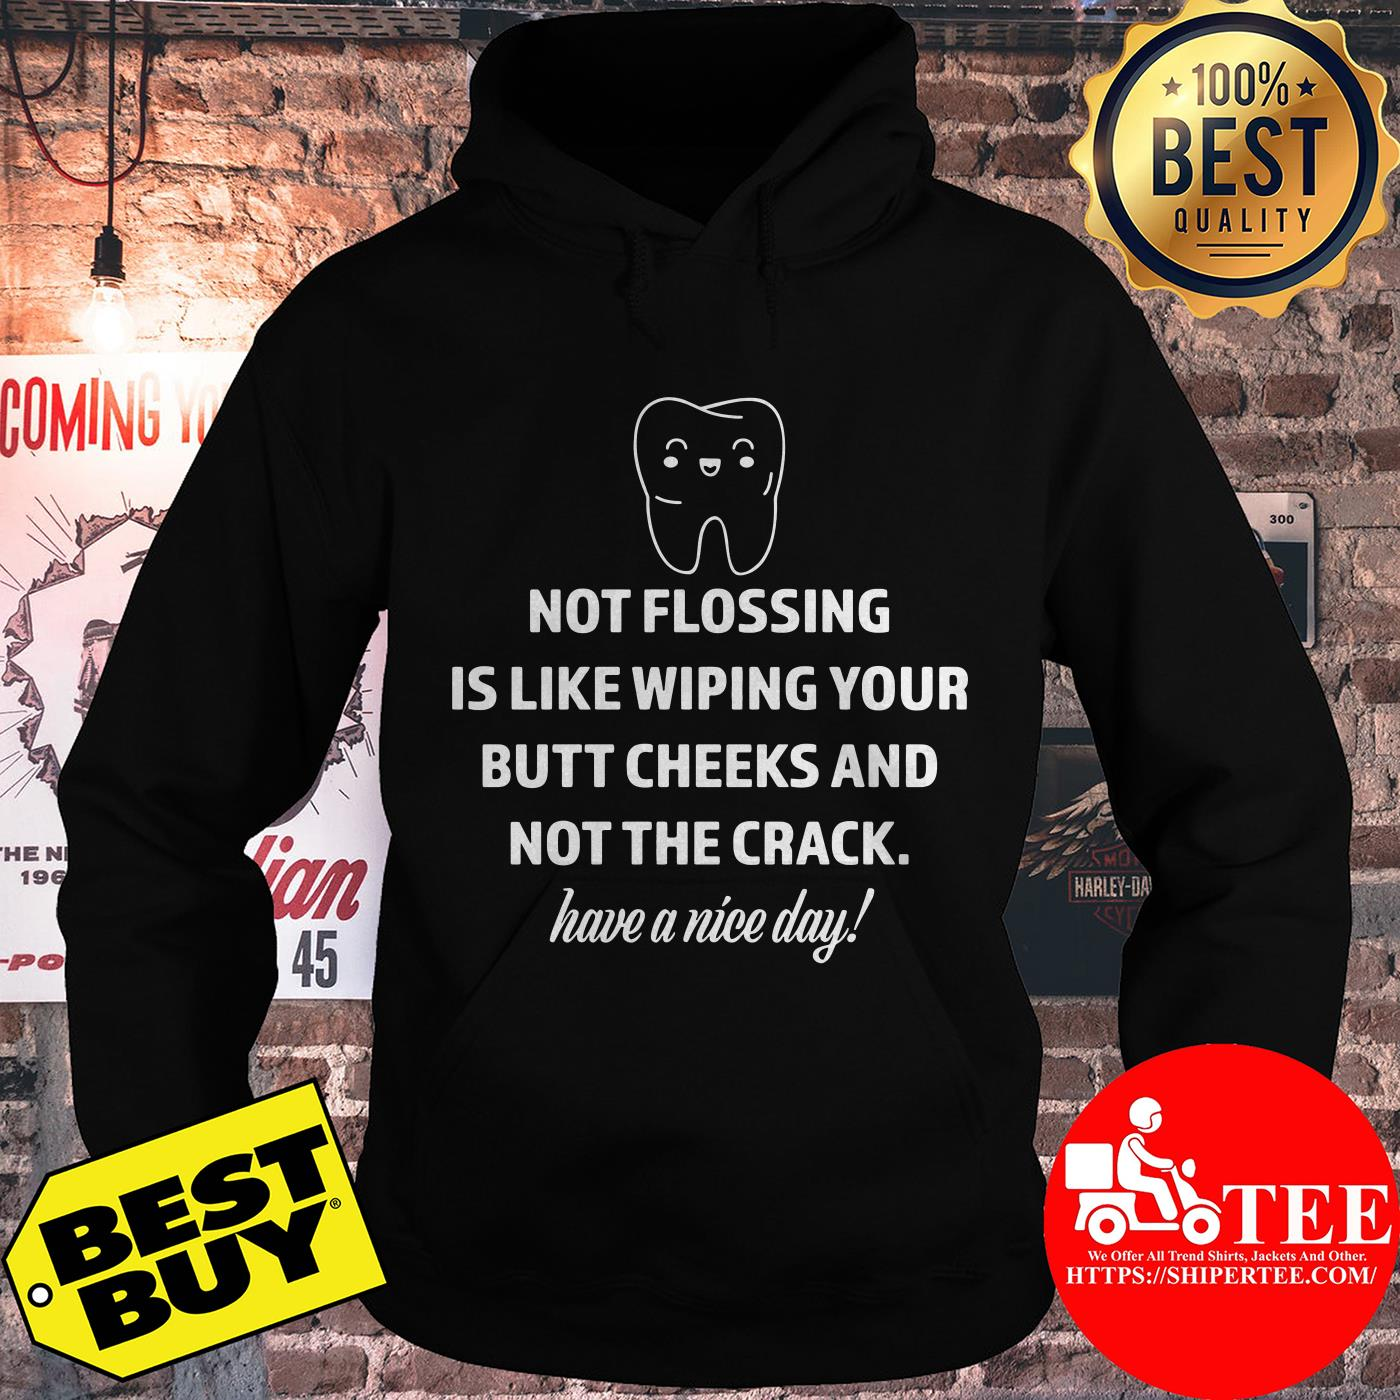 Not flossing is like wiping your butt cheeks and not the crack have a nice day hoodie